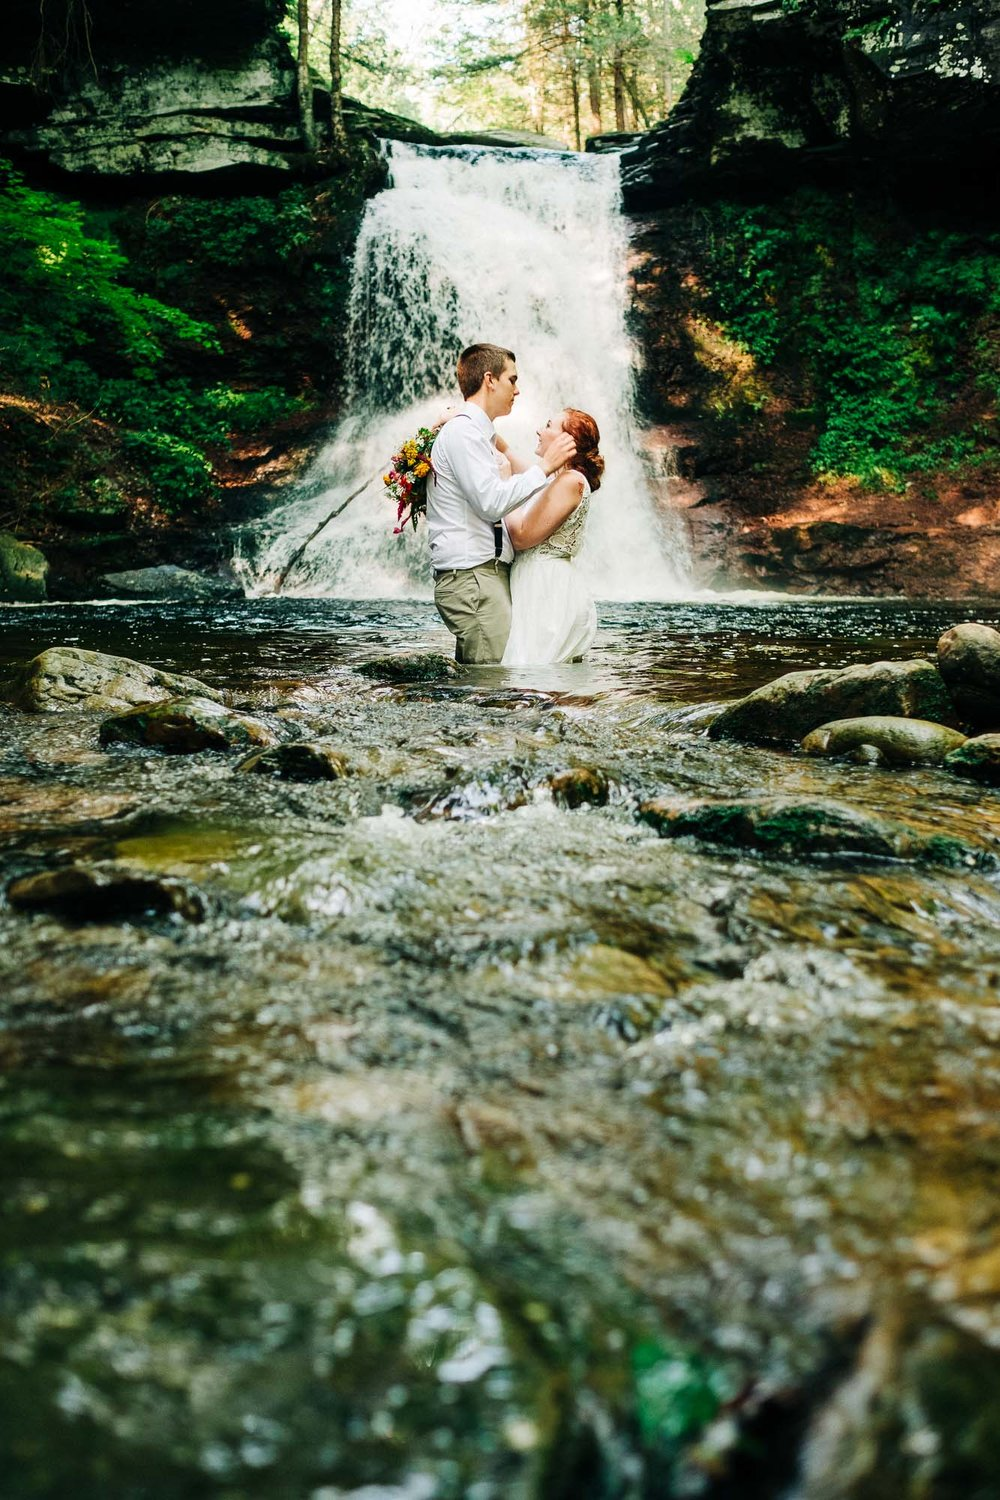 ricketts-glen-waterfall-pennsylvania-sullivan-falls-elopement-1413.jpg